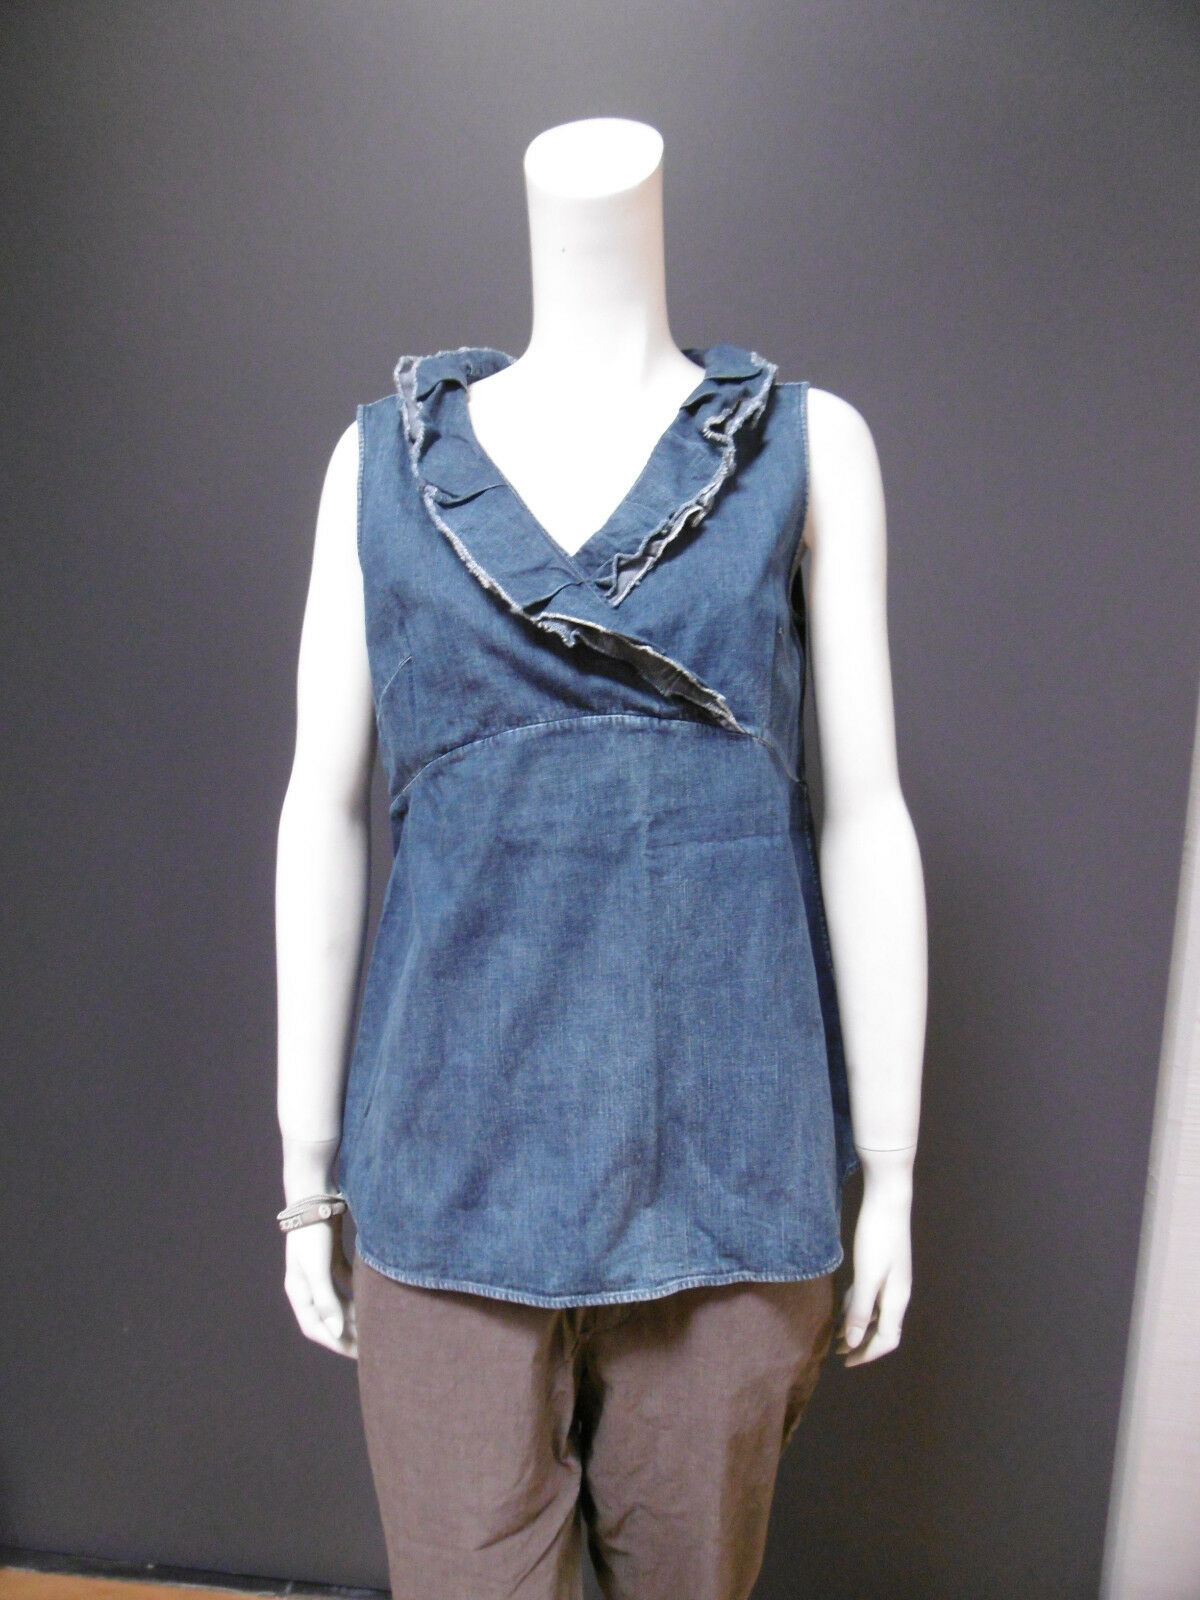 45rpm 45R 100 % cotton jean top   blouse NEW with TAG  Größe   4  indigo